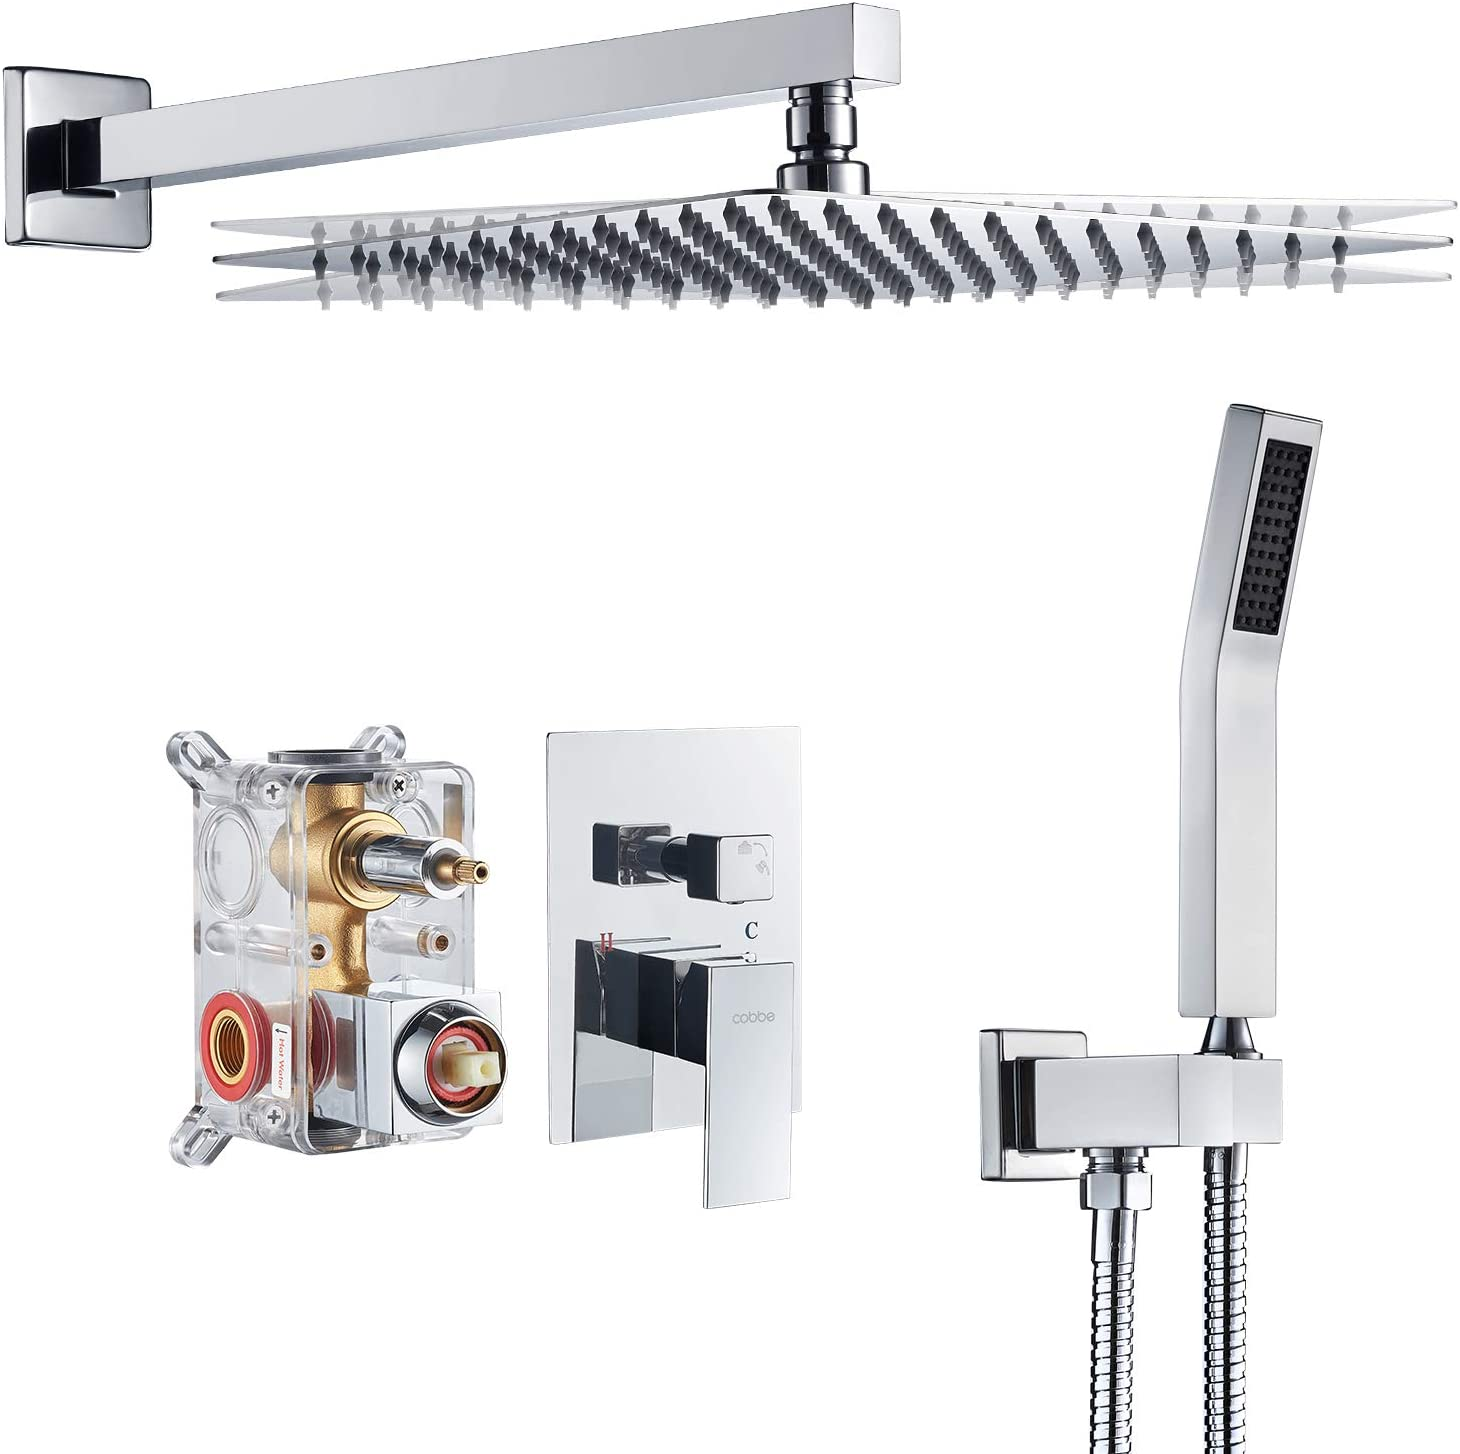 Cobbe Shower System,Shower Faucets Sets Complete,12 inches Rainfall Shower Head with Handheld, Shower Faucet Set for Bathroom Rough-in Valve Body and Trim Included Chrome